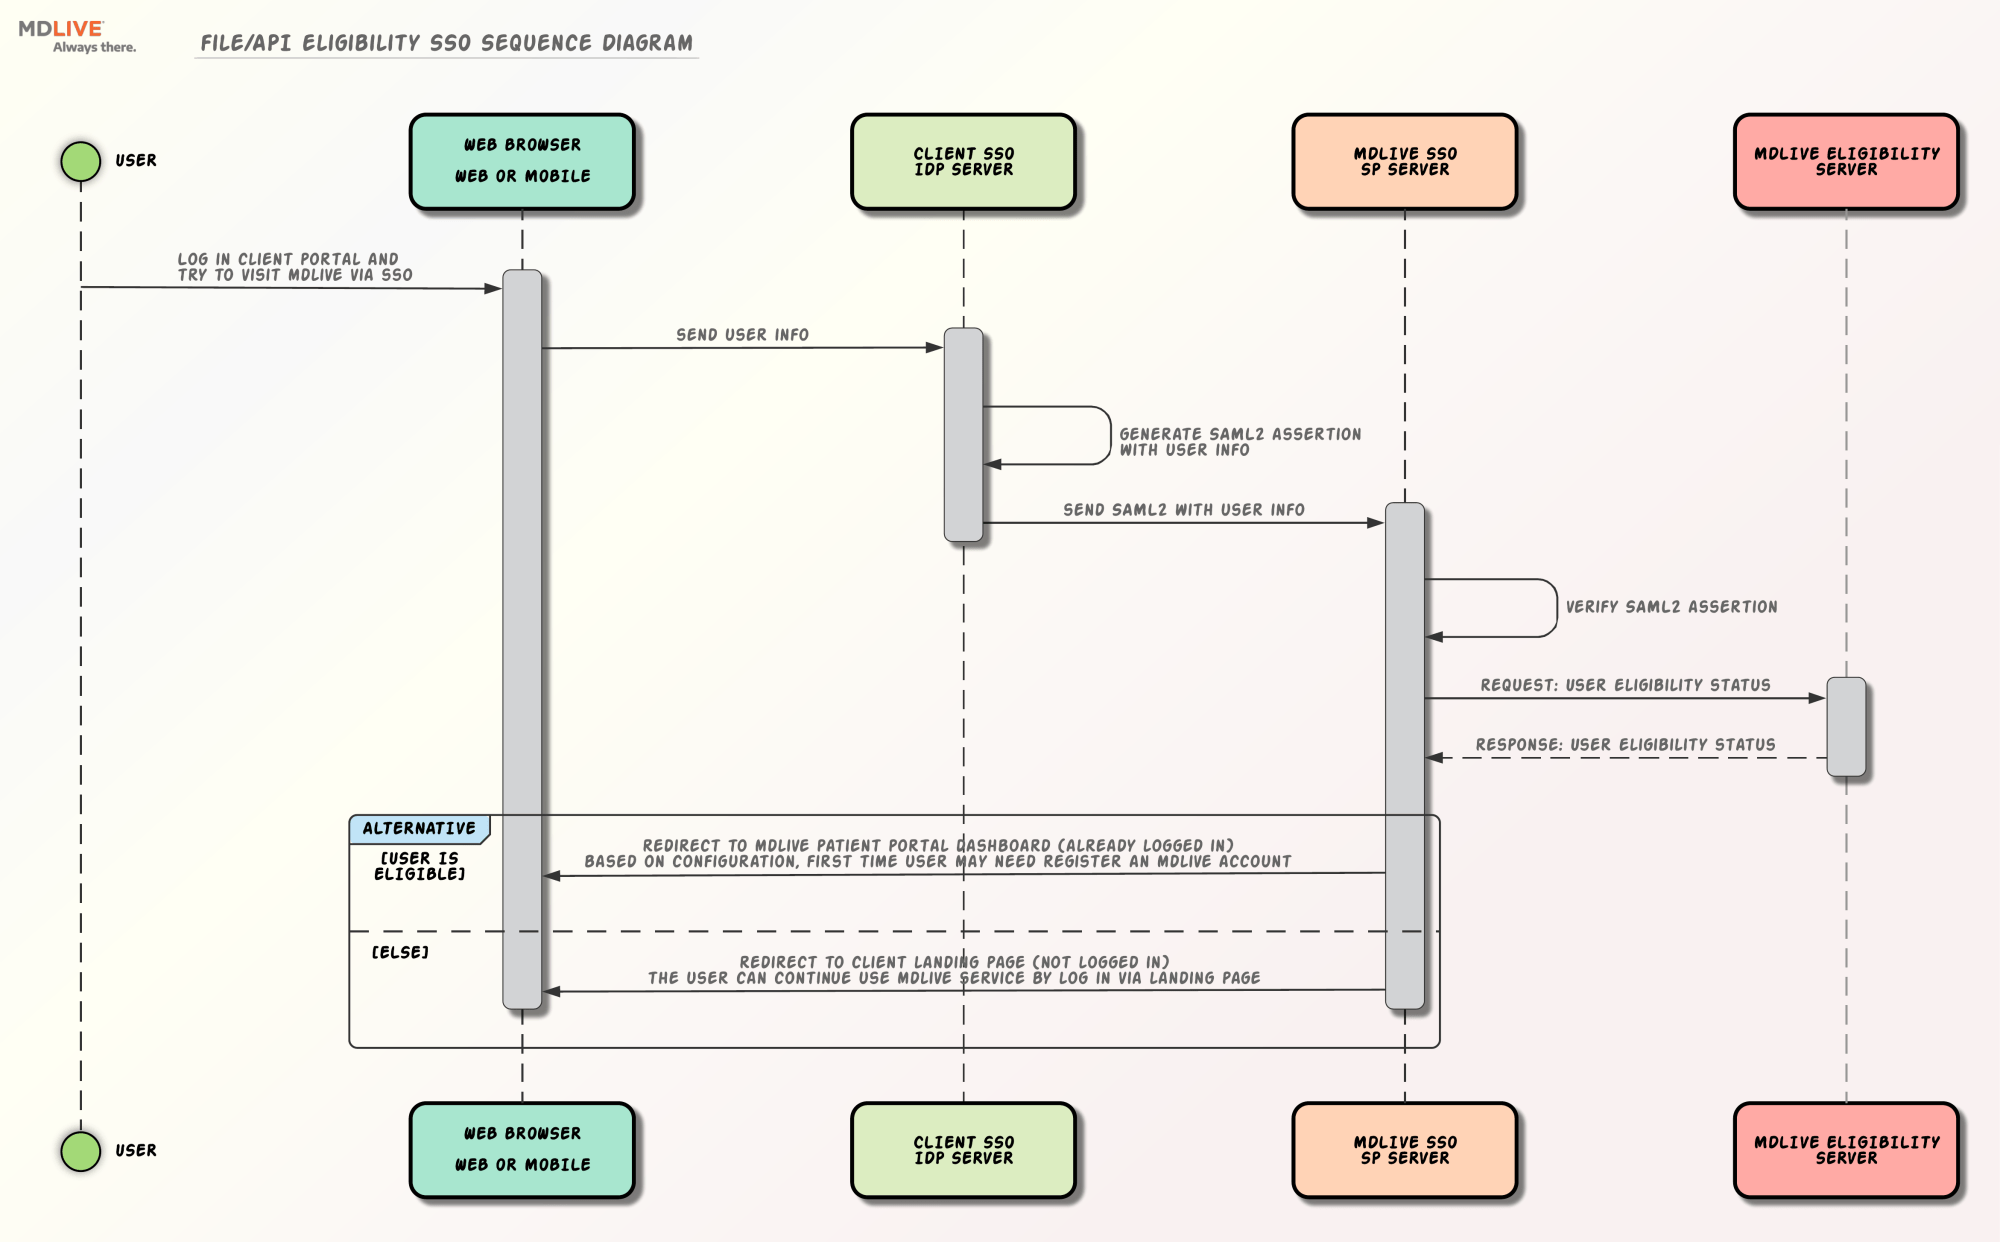 hight resolution of file api eligibility sso sequence diagram right click to download the original image